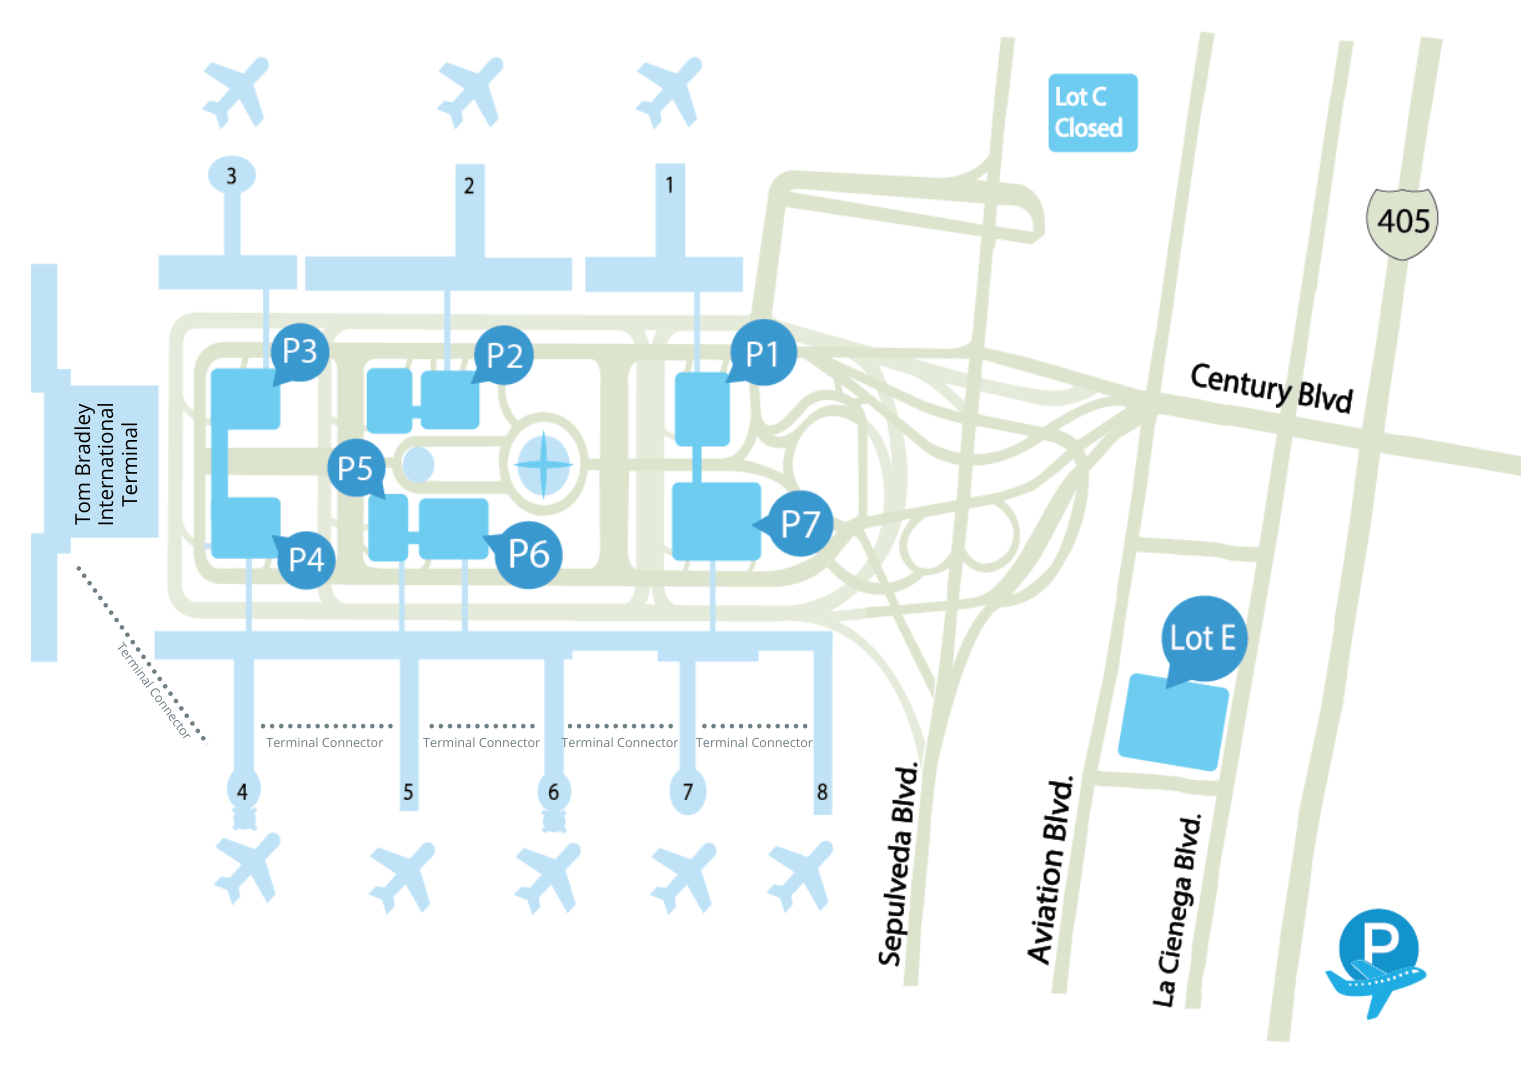 LAX Airport Terminal Guide